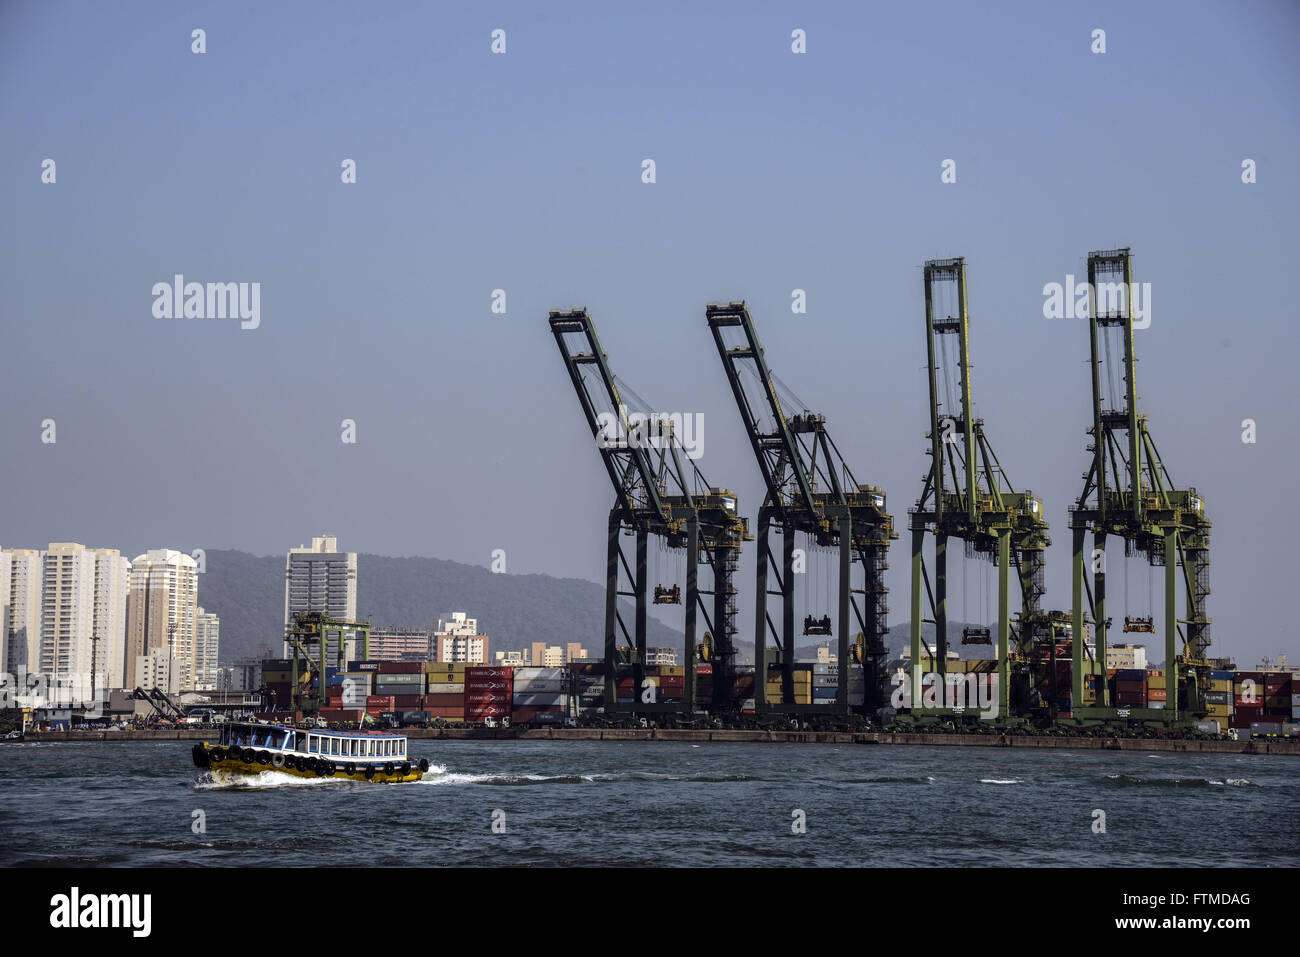 Boat sailing in front Libra Terminals - Stock Image